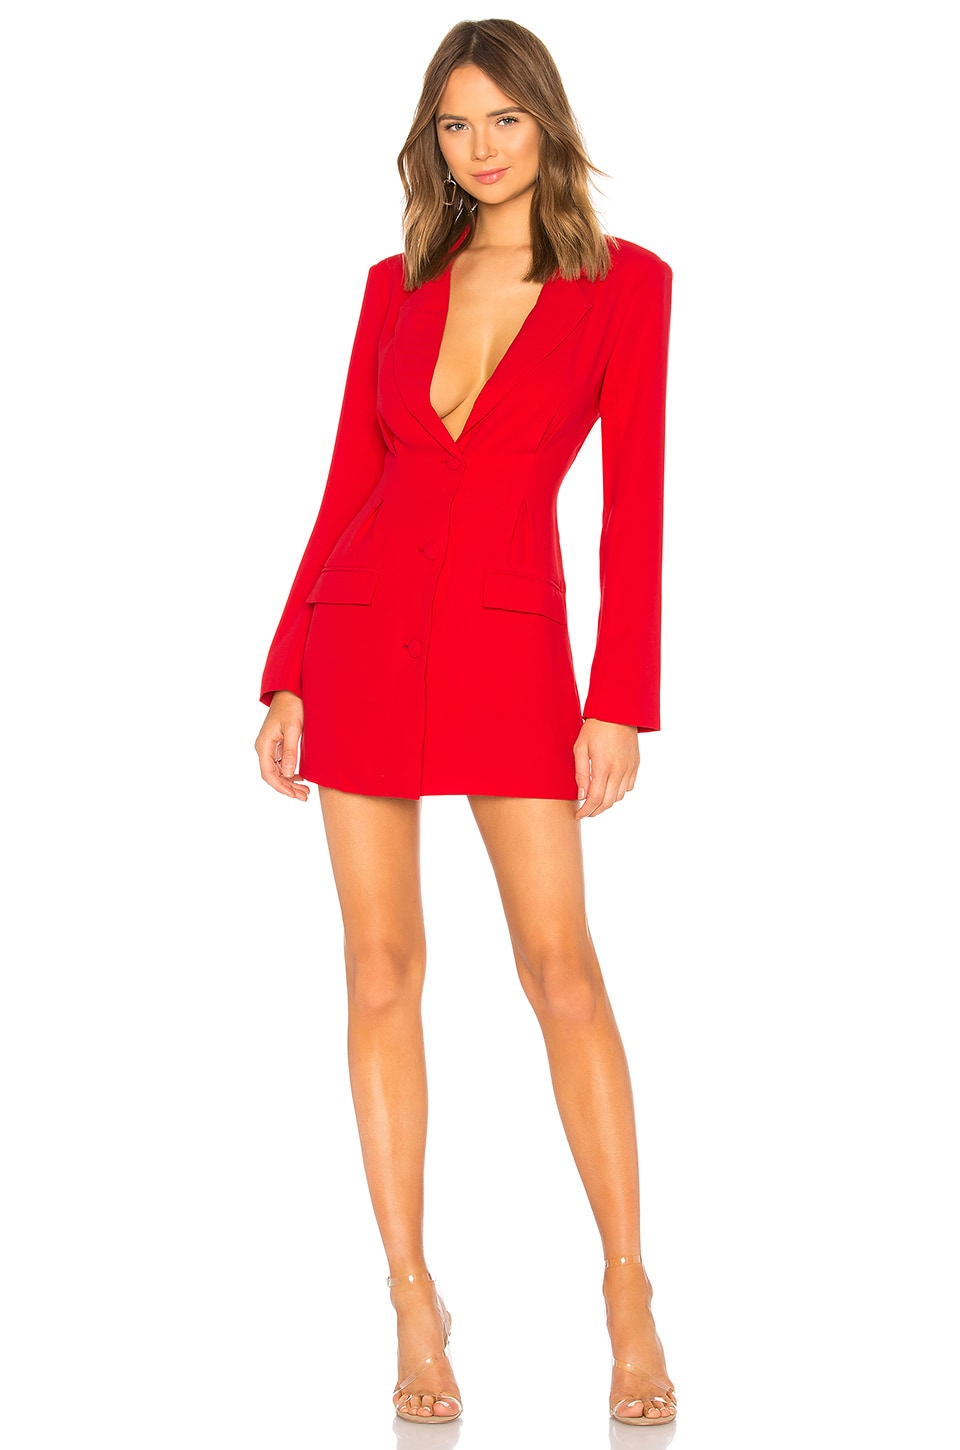 h:ours x Yovanna Ventura Amanda Blazer Mini Dress in Red